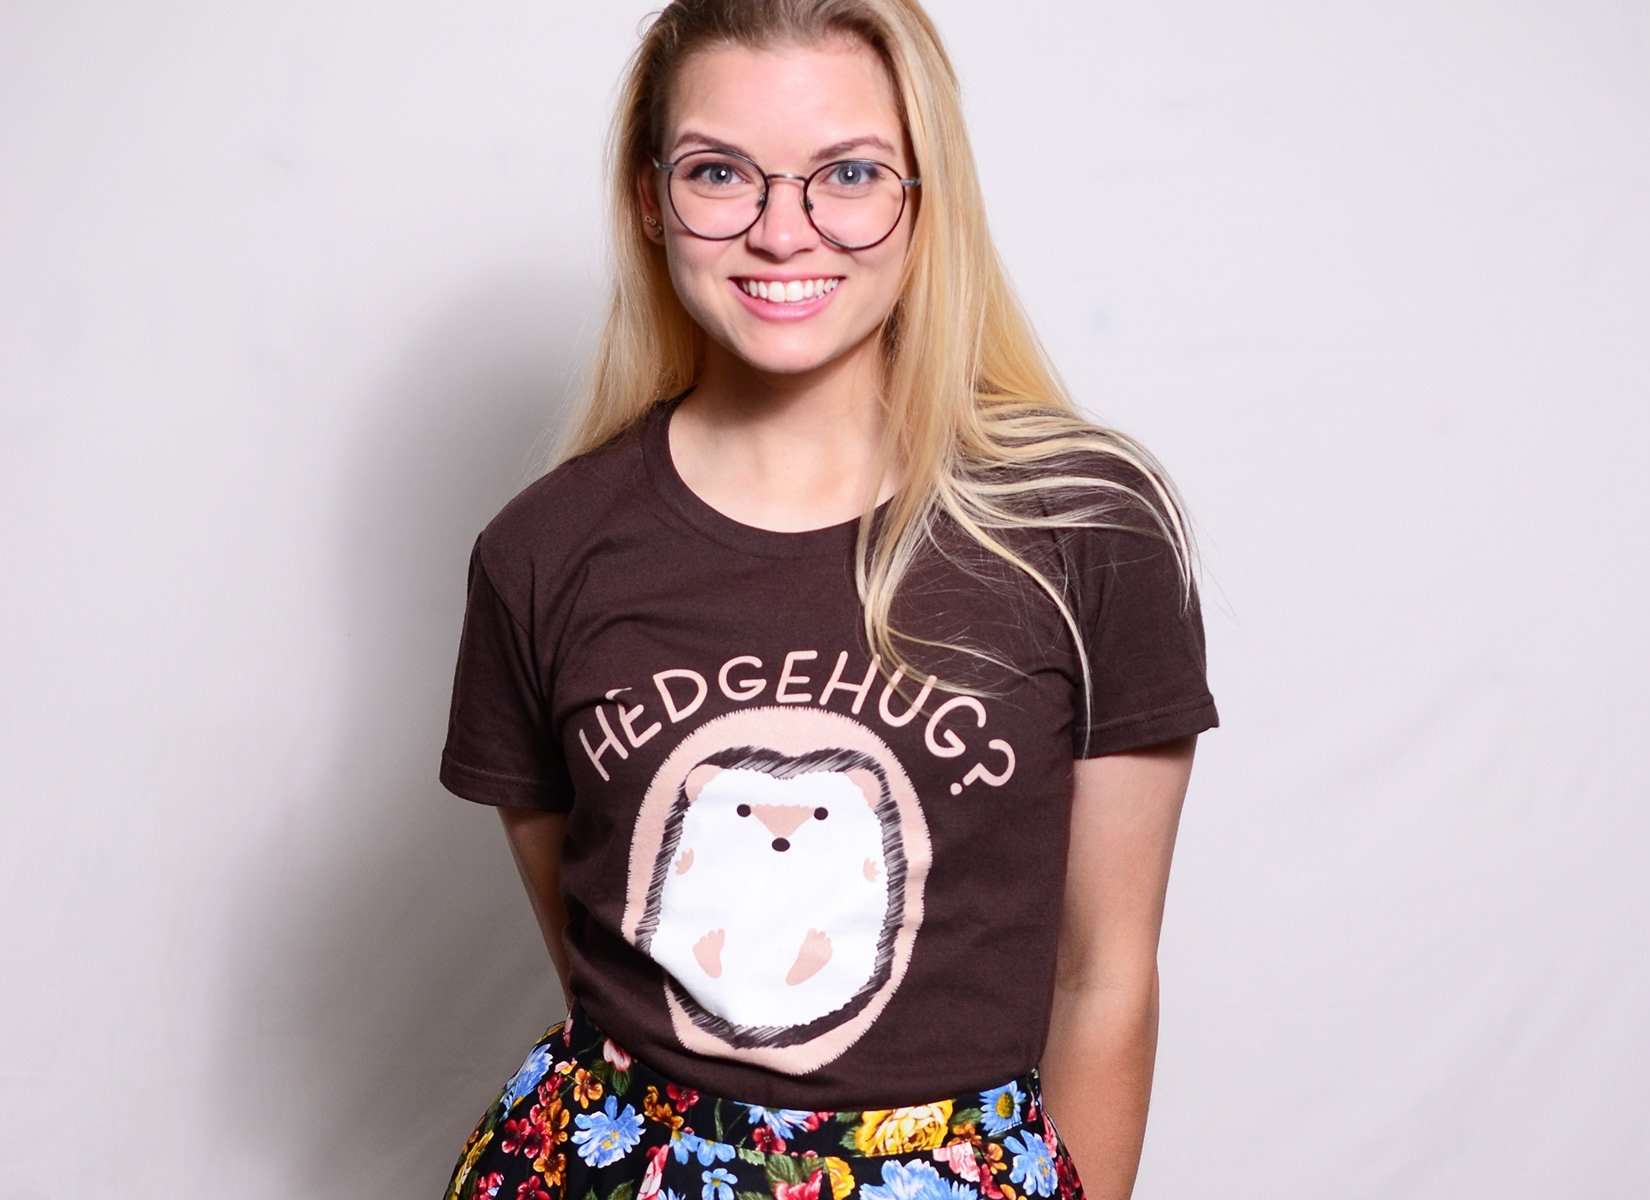 Hedgehug on Womens T-Shirt